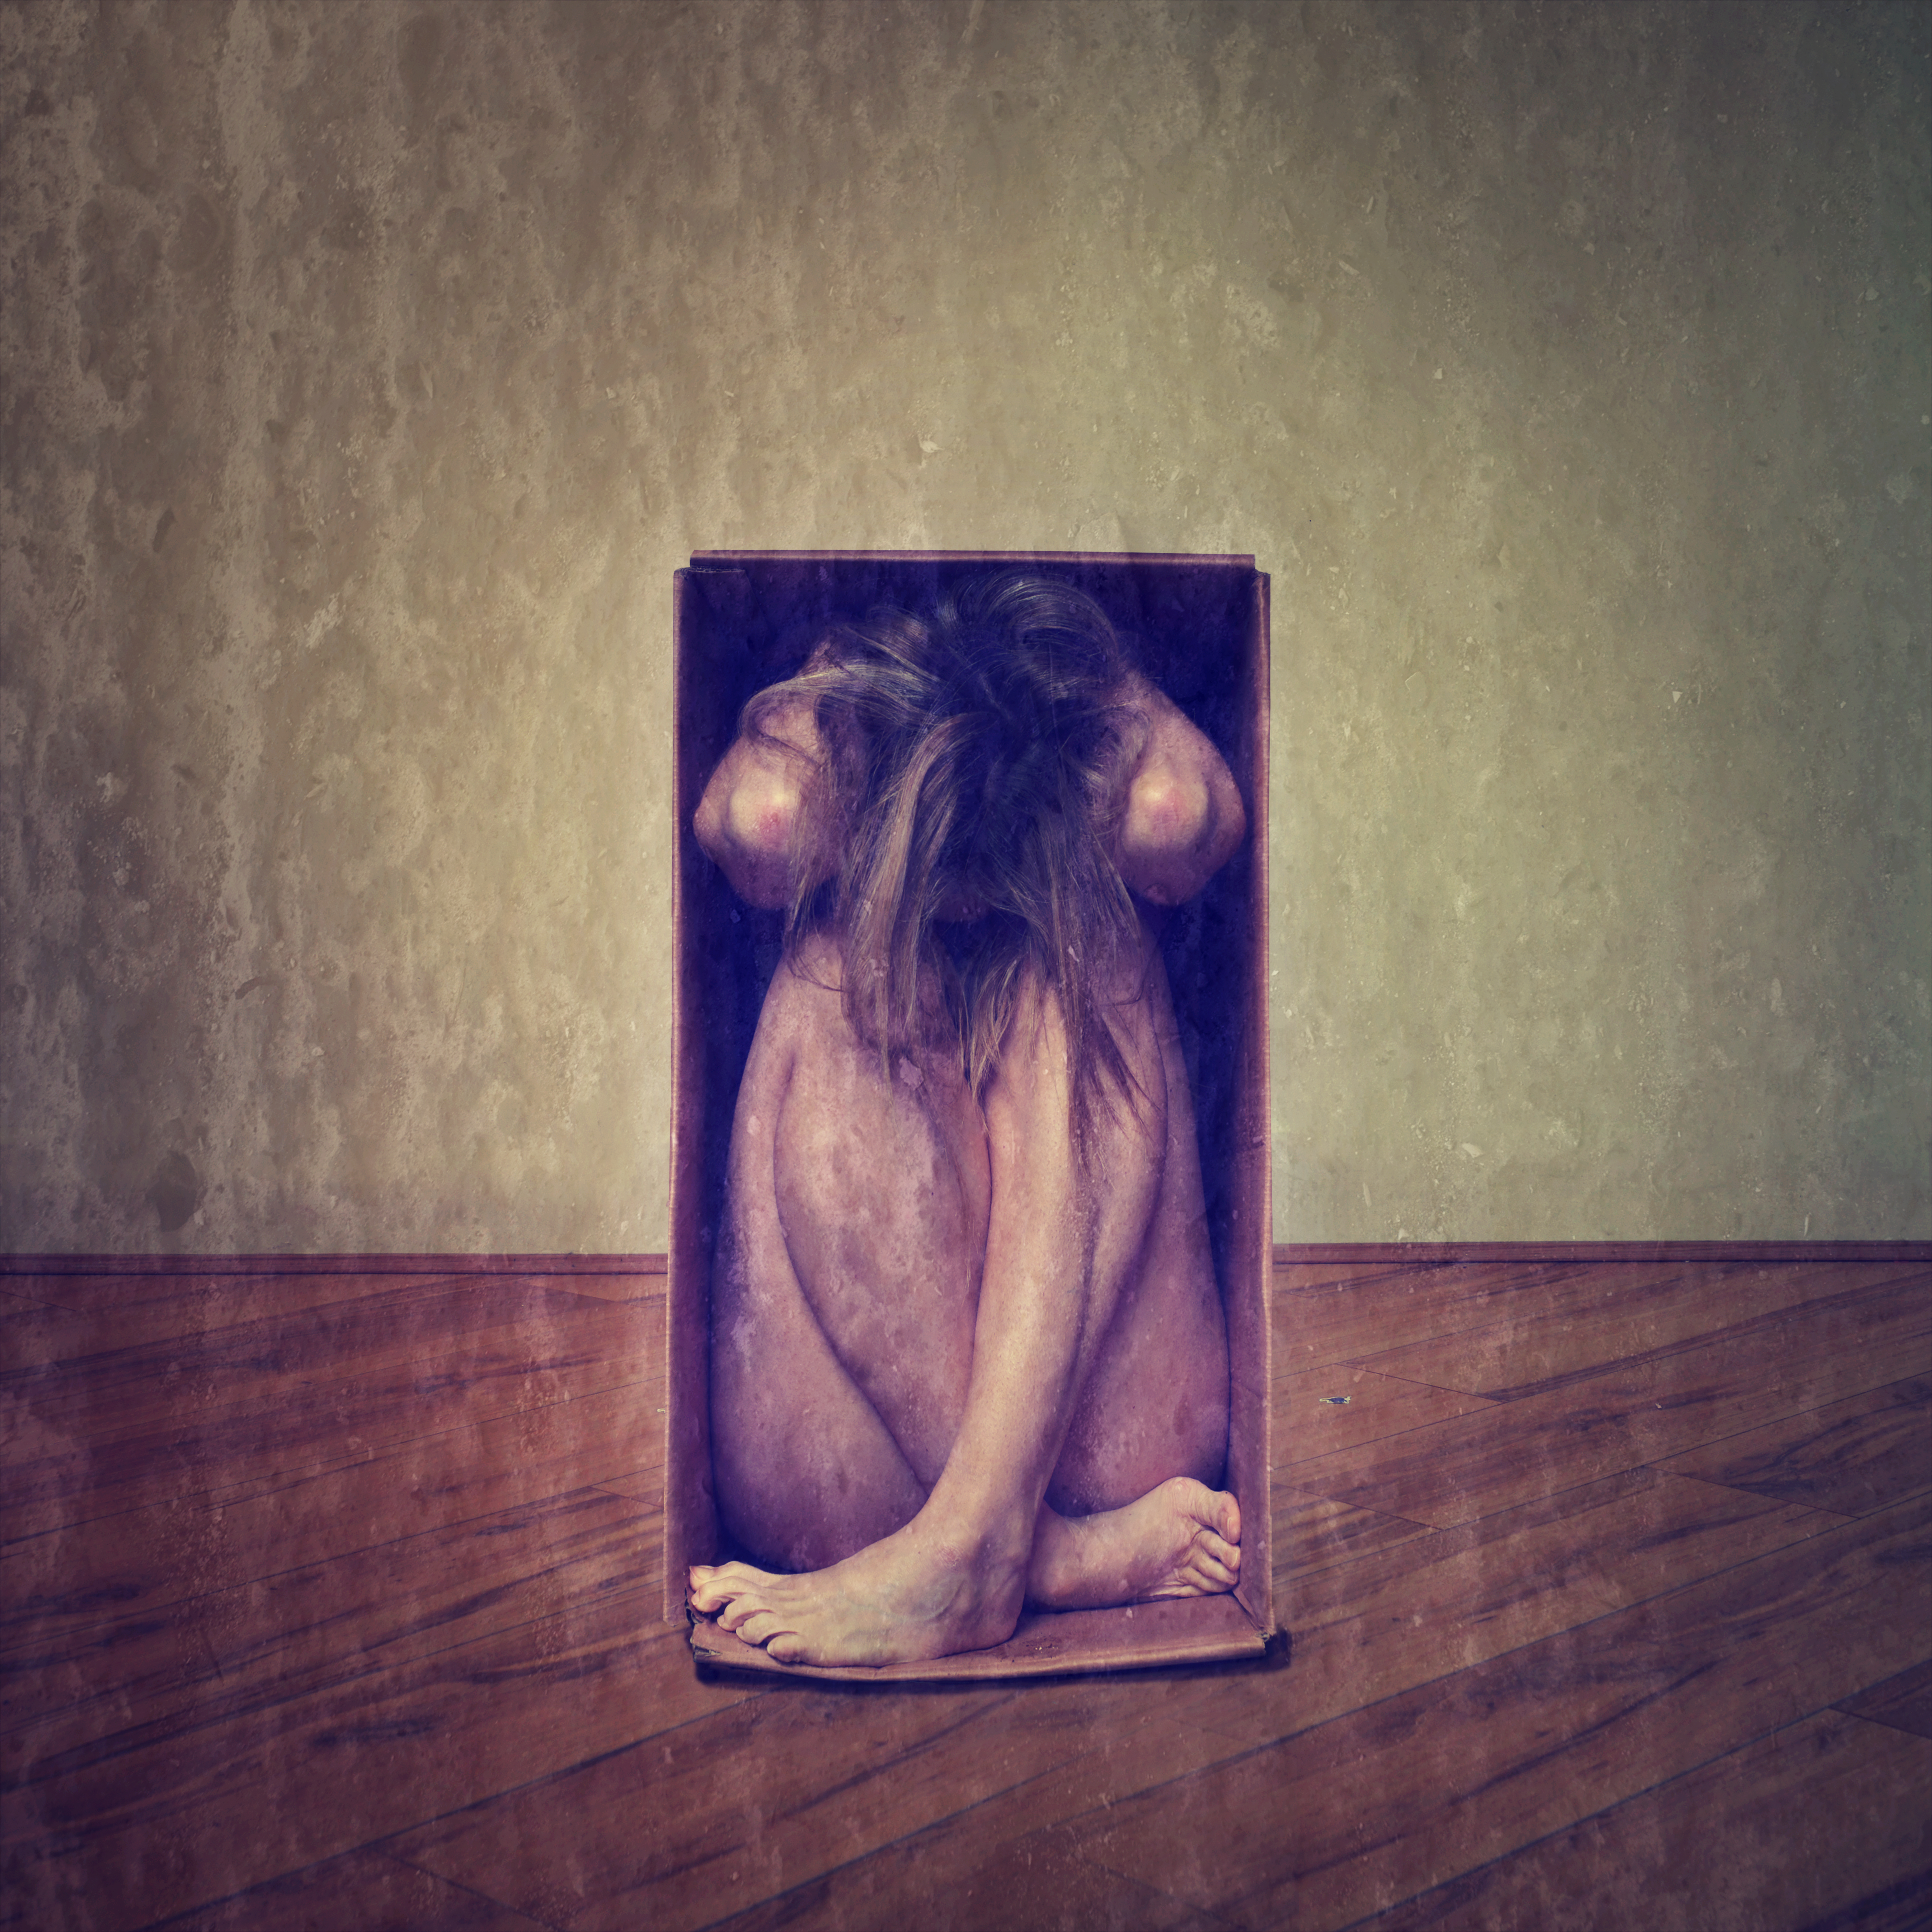 Square frame of woman sat inside a box, crammed in, her hands around her head and her legs crossed.